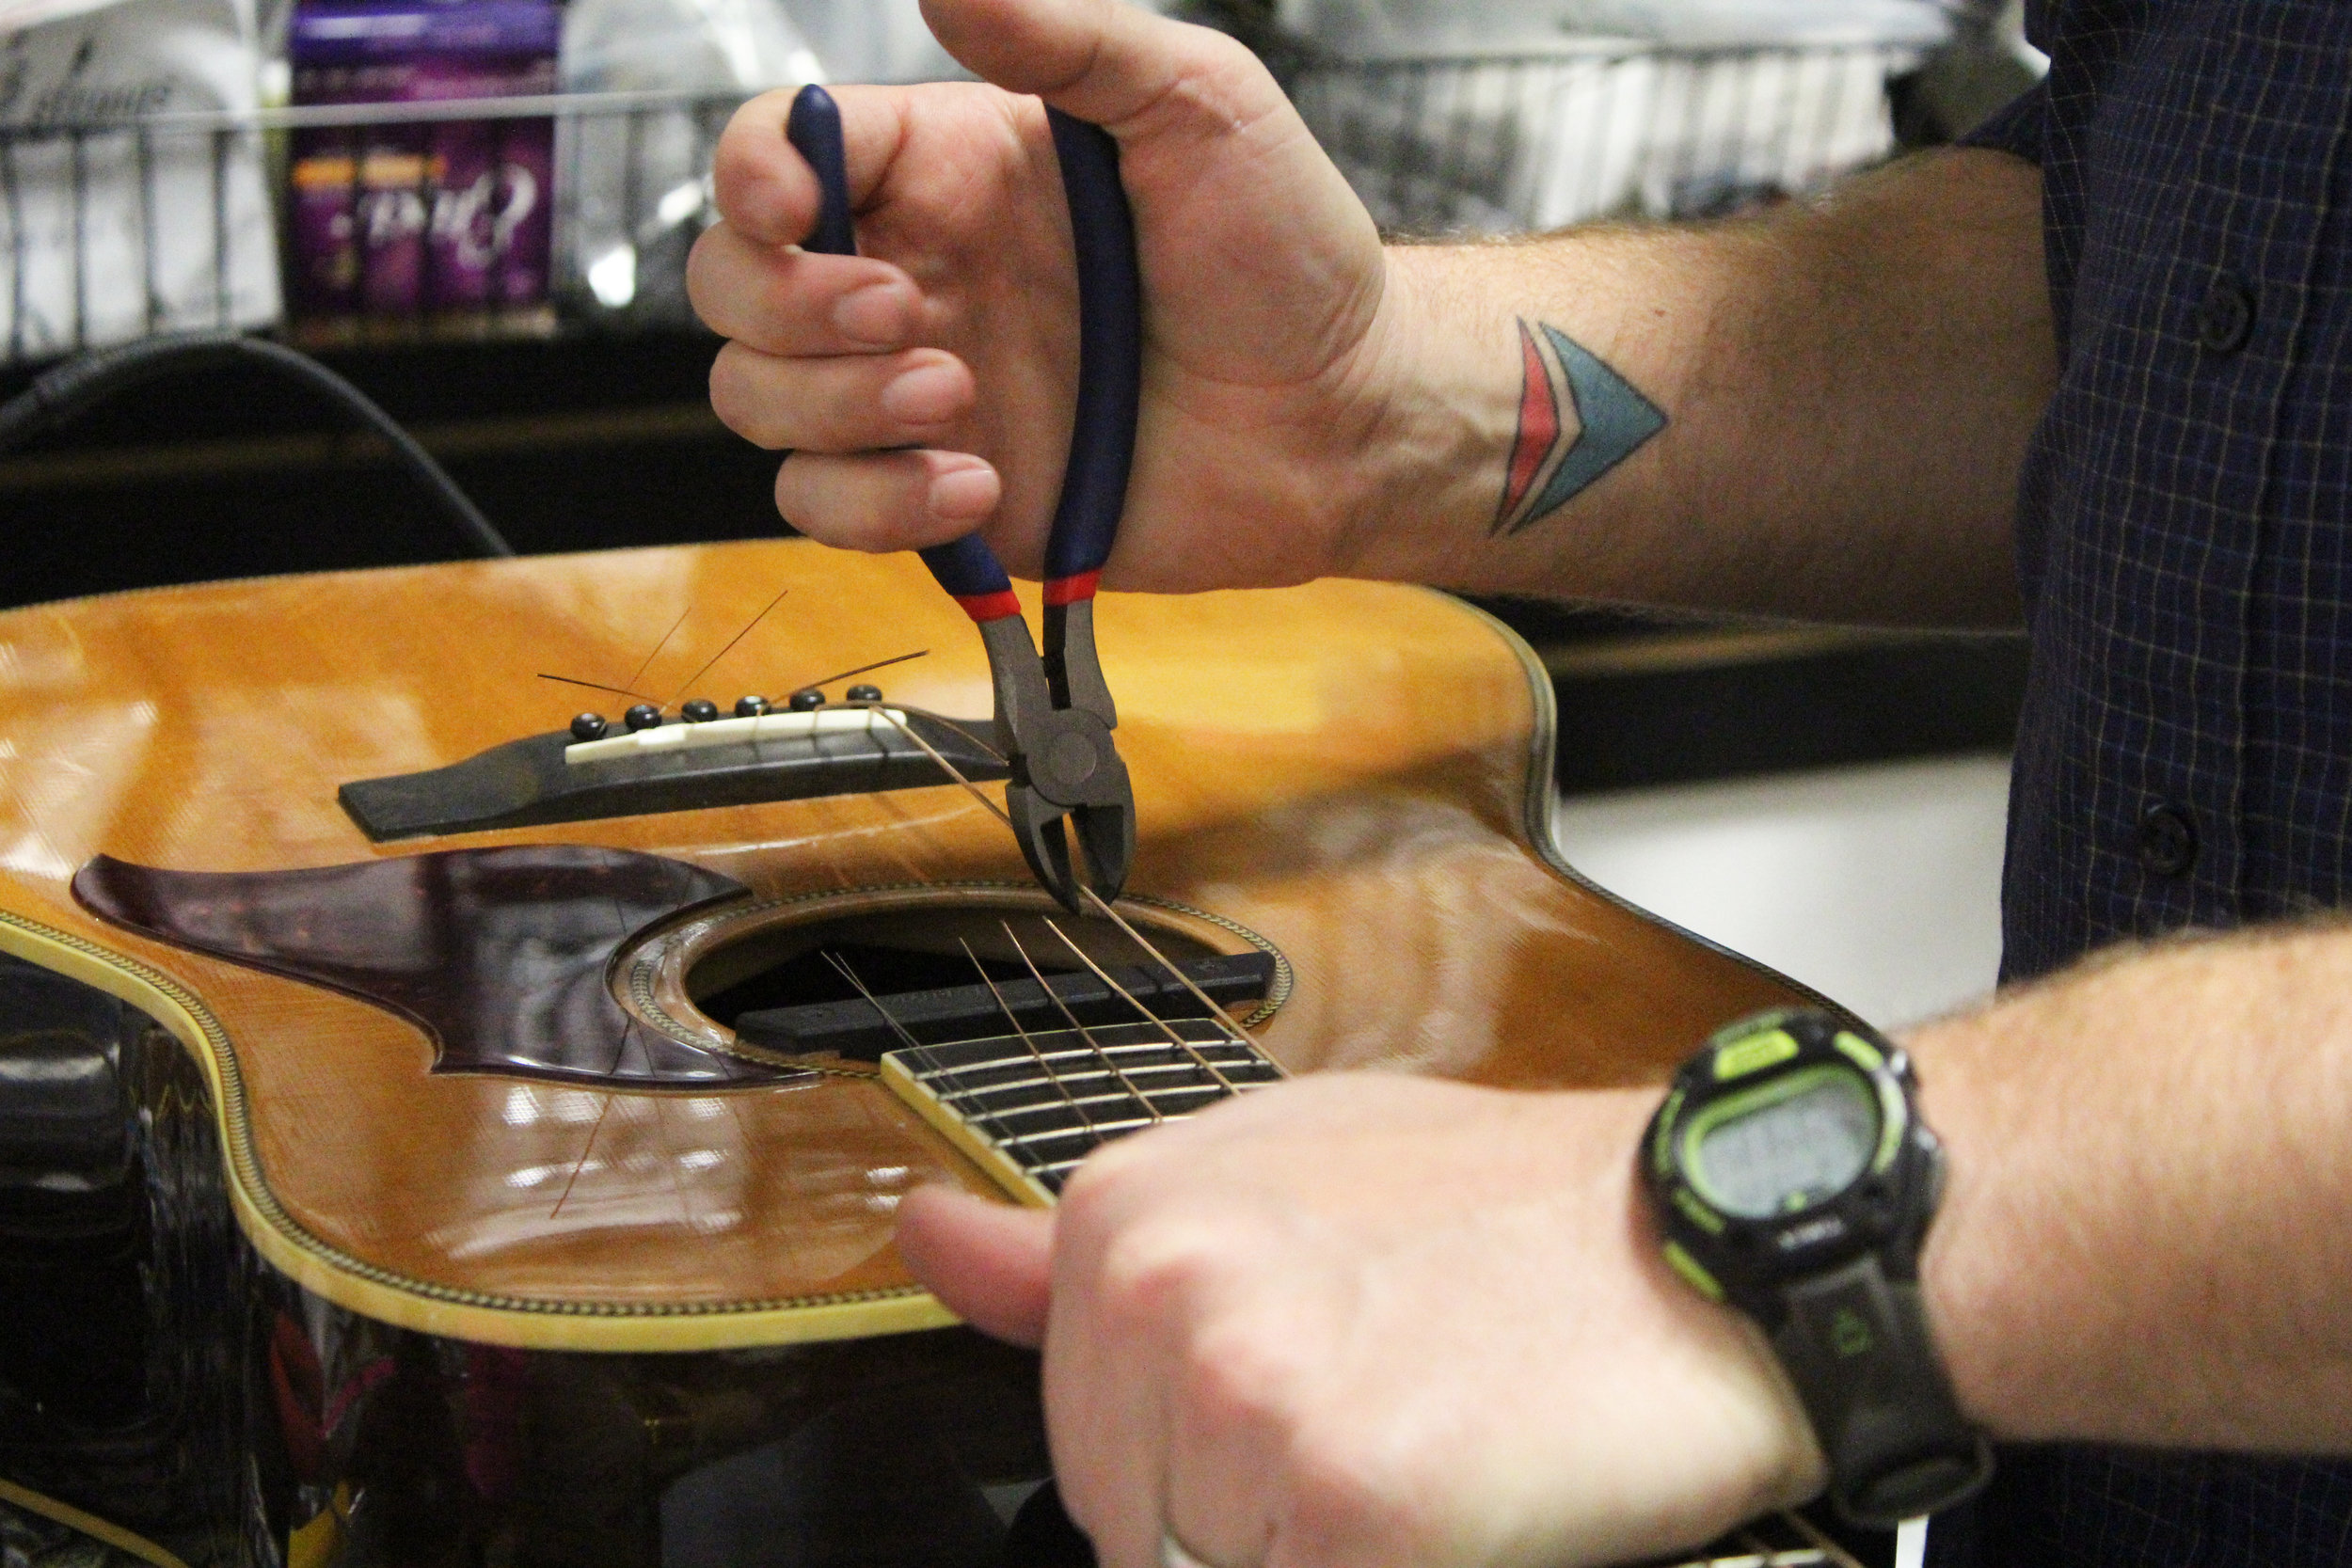 Brent Moore uses a wire cutter to cut loose strings, Friday, Jan. 19, 2018, at CoMo Guitar Works. CoMo Guitar Works is located in the used instrument store, Music Go Round, off Broadway in Columbia, Mo.